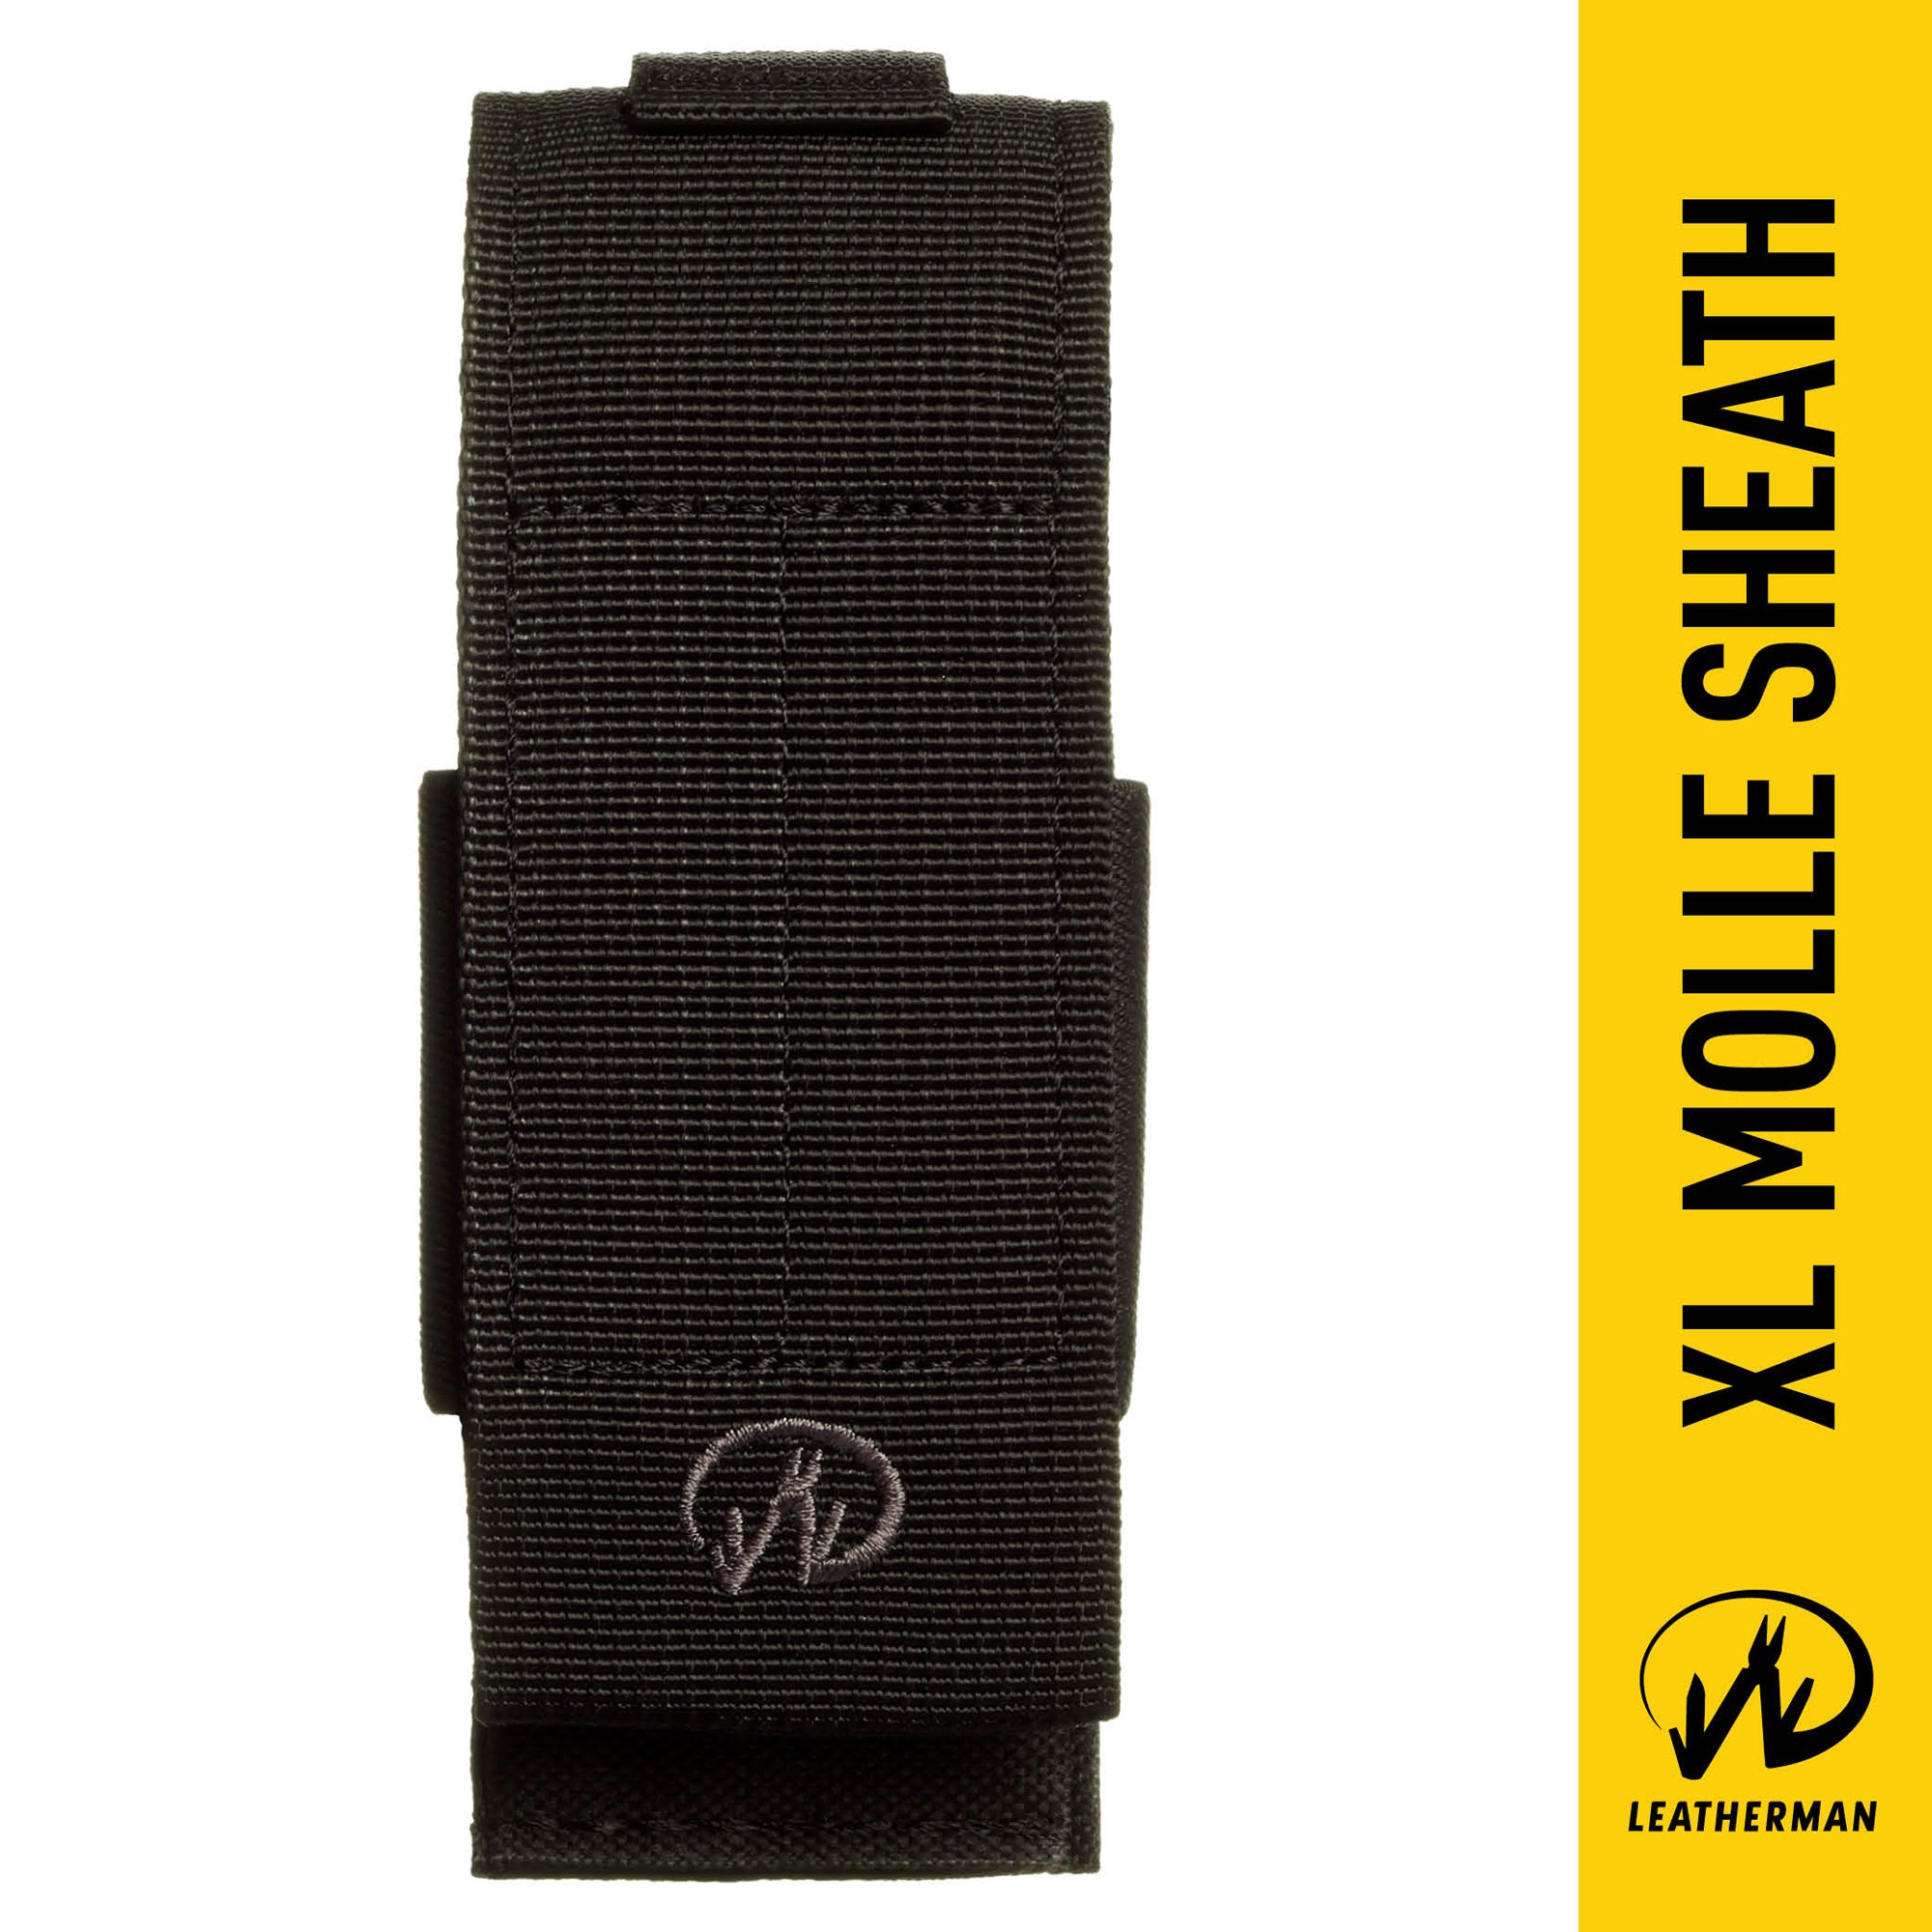 Leatherman - MOLLE Compatible X-Large Nylon Sheath, Fits MUT, Surge, and Super Tool 300 - Black